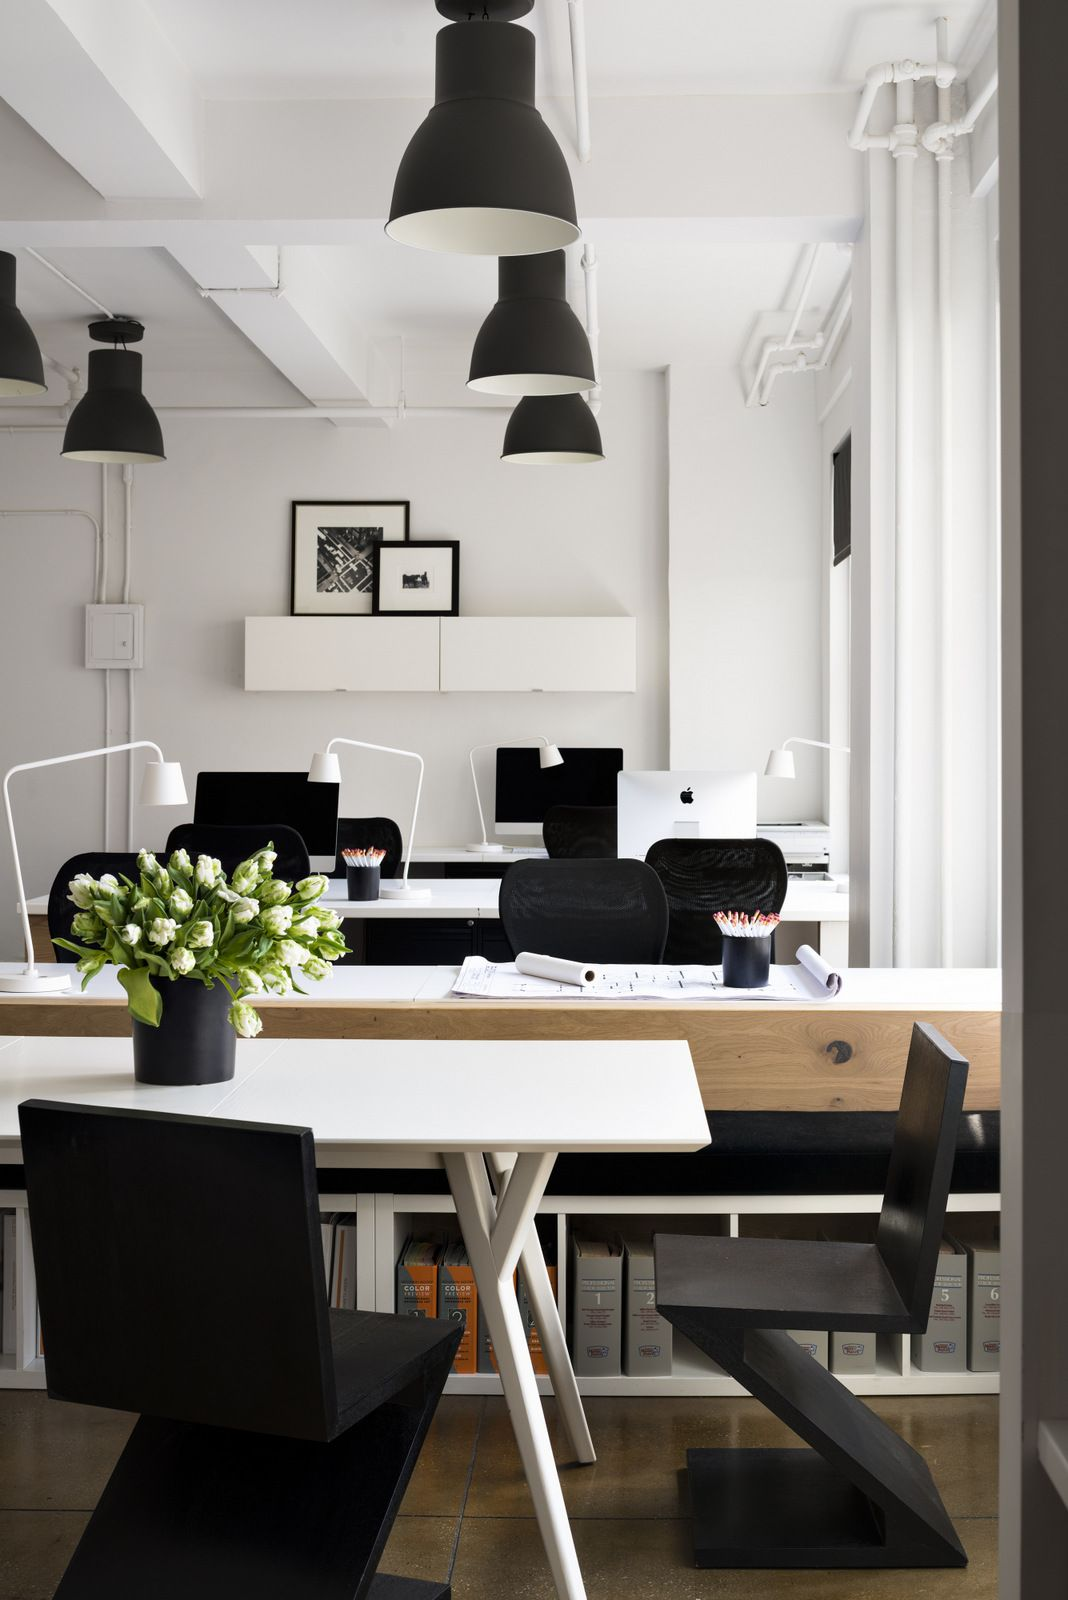 Office tour bhdm design new york city offices - Small office setup ideas ...